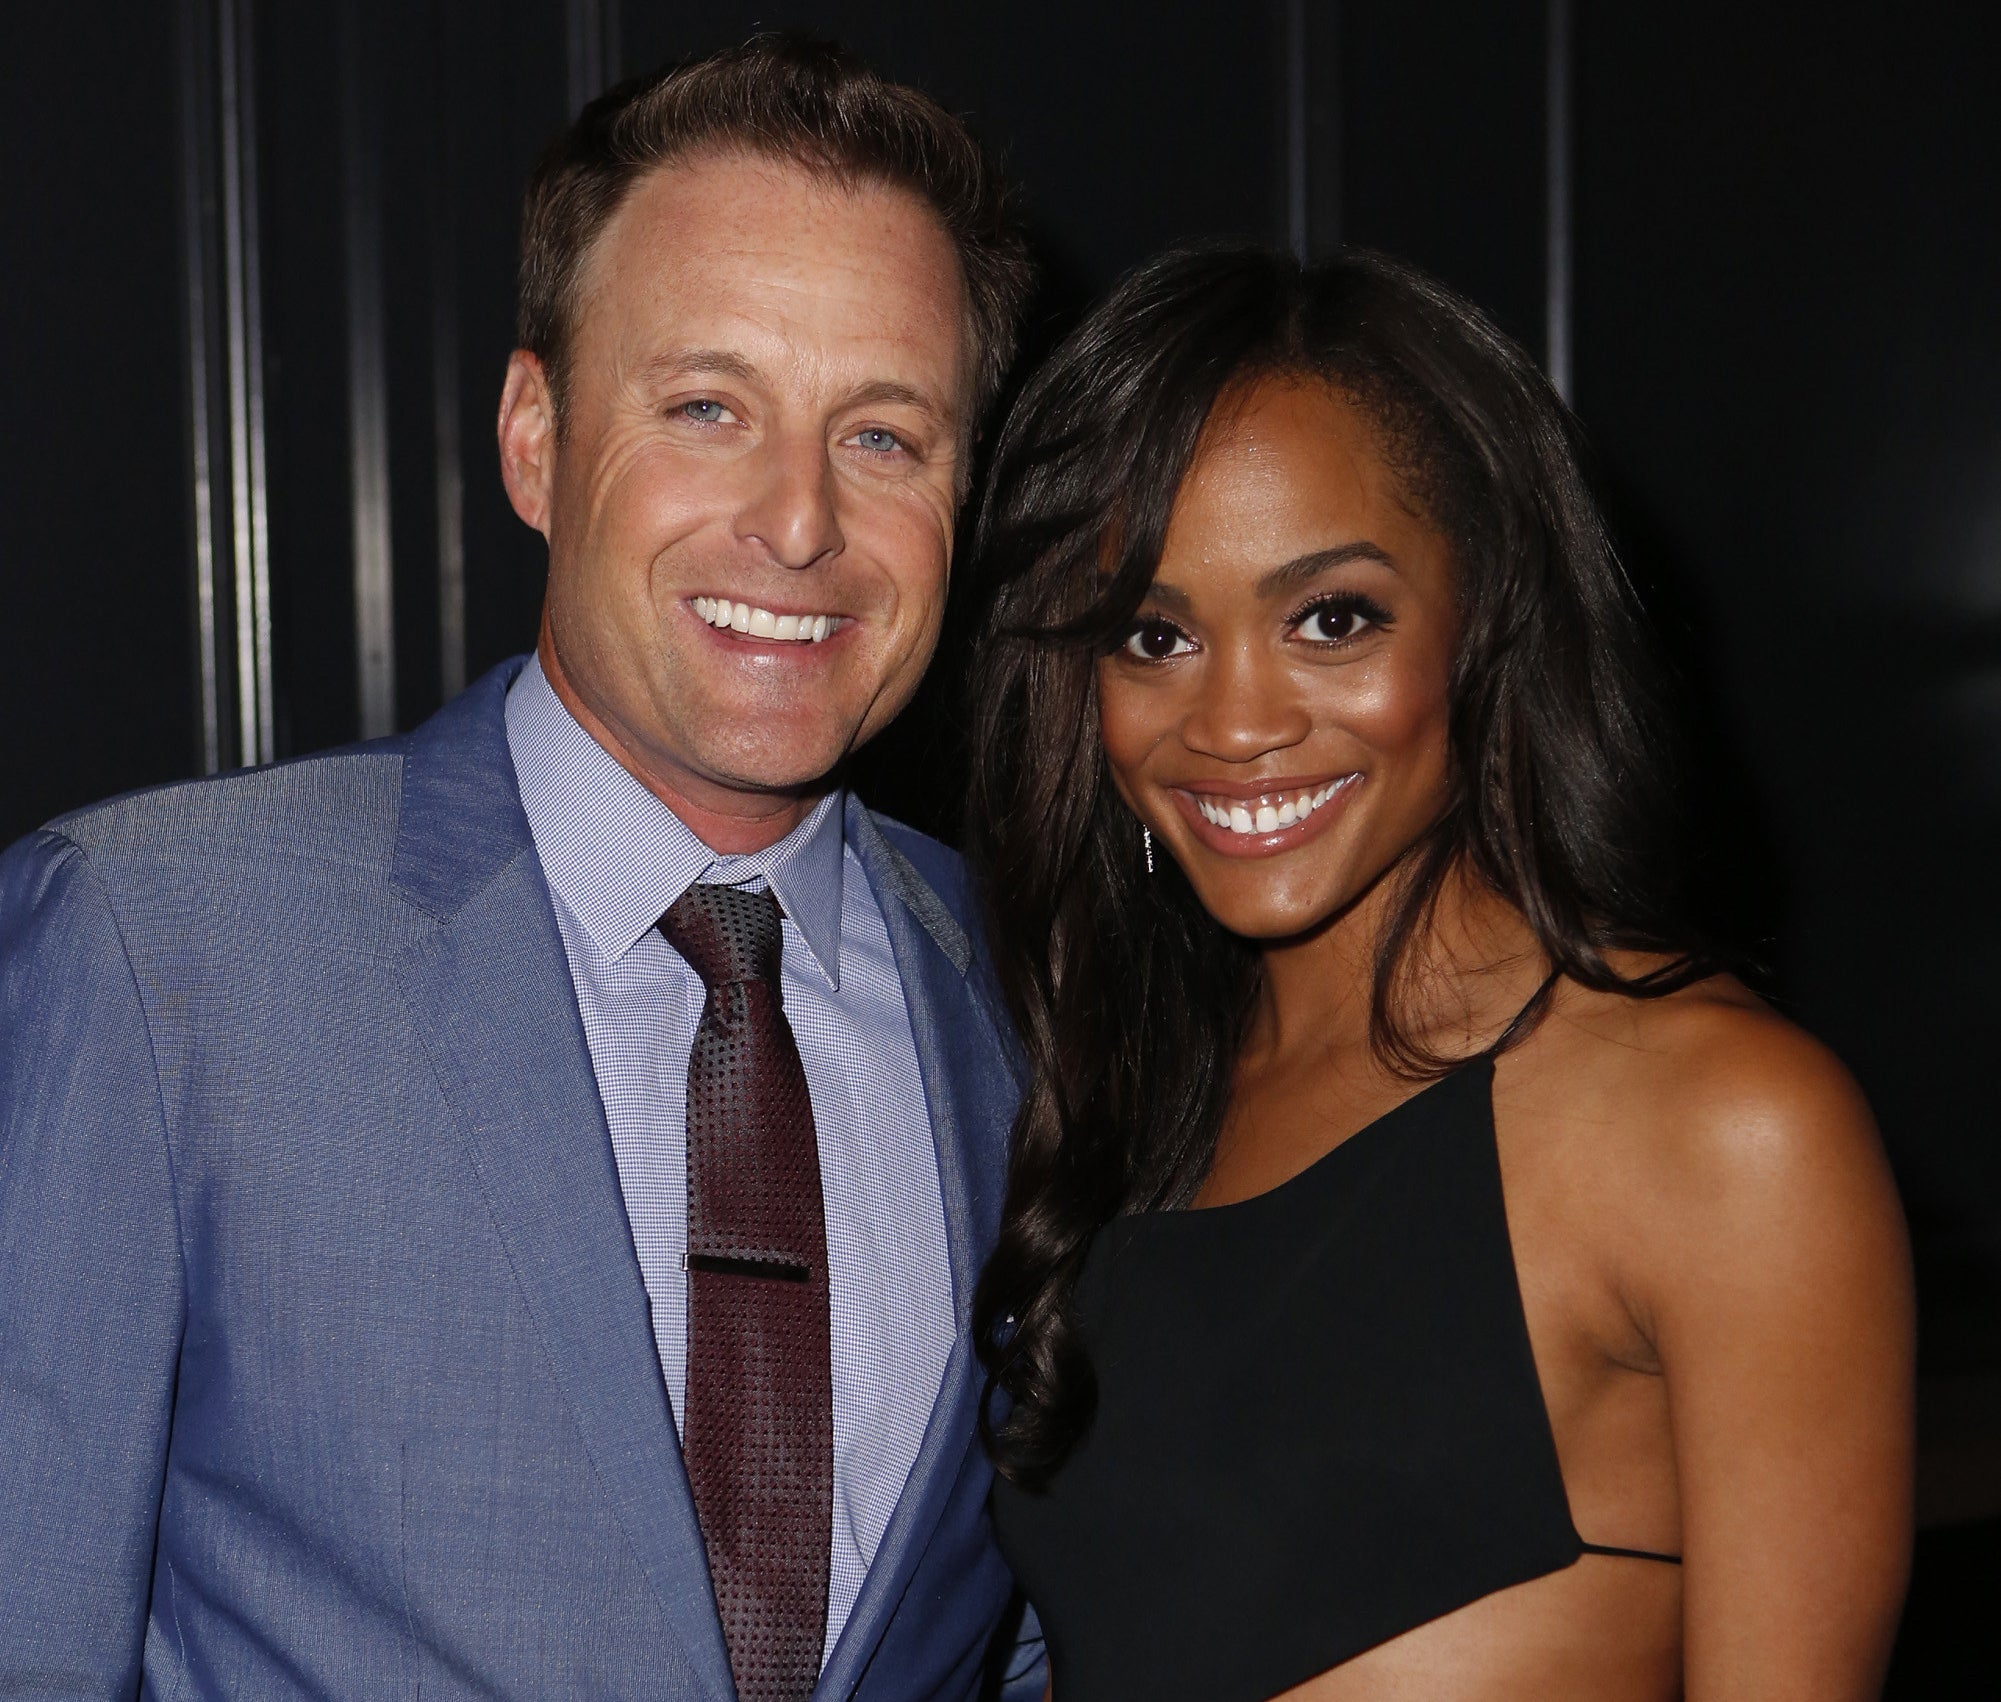 Rachel and Chris smile while attending a Bachelor event